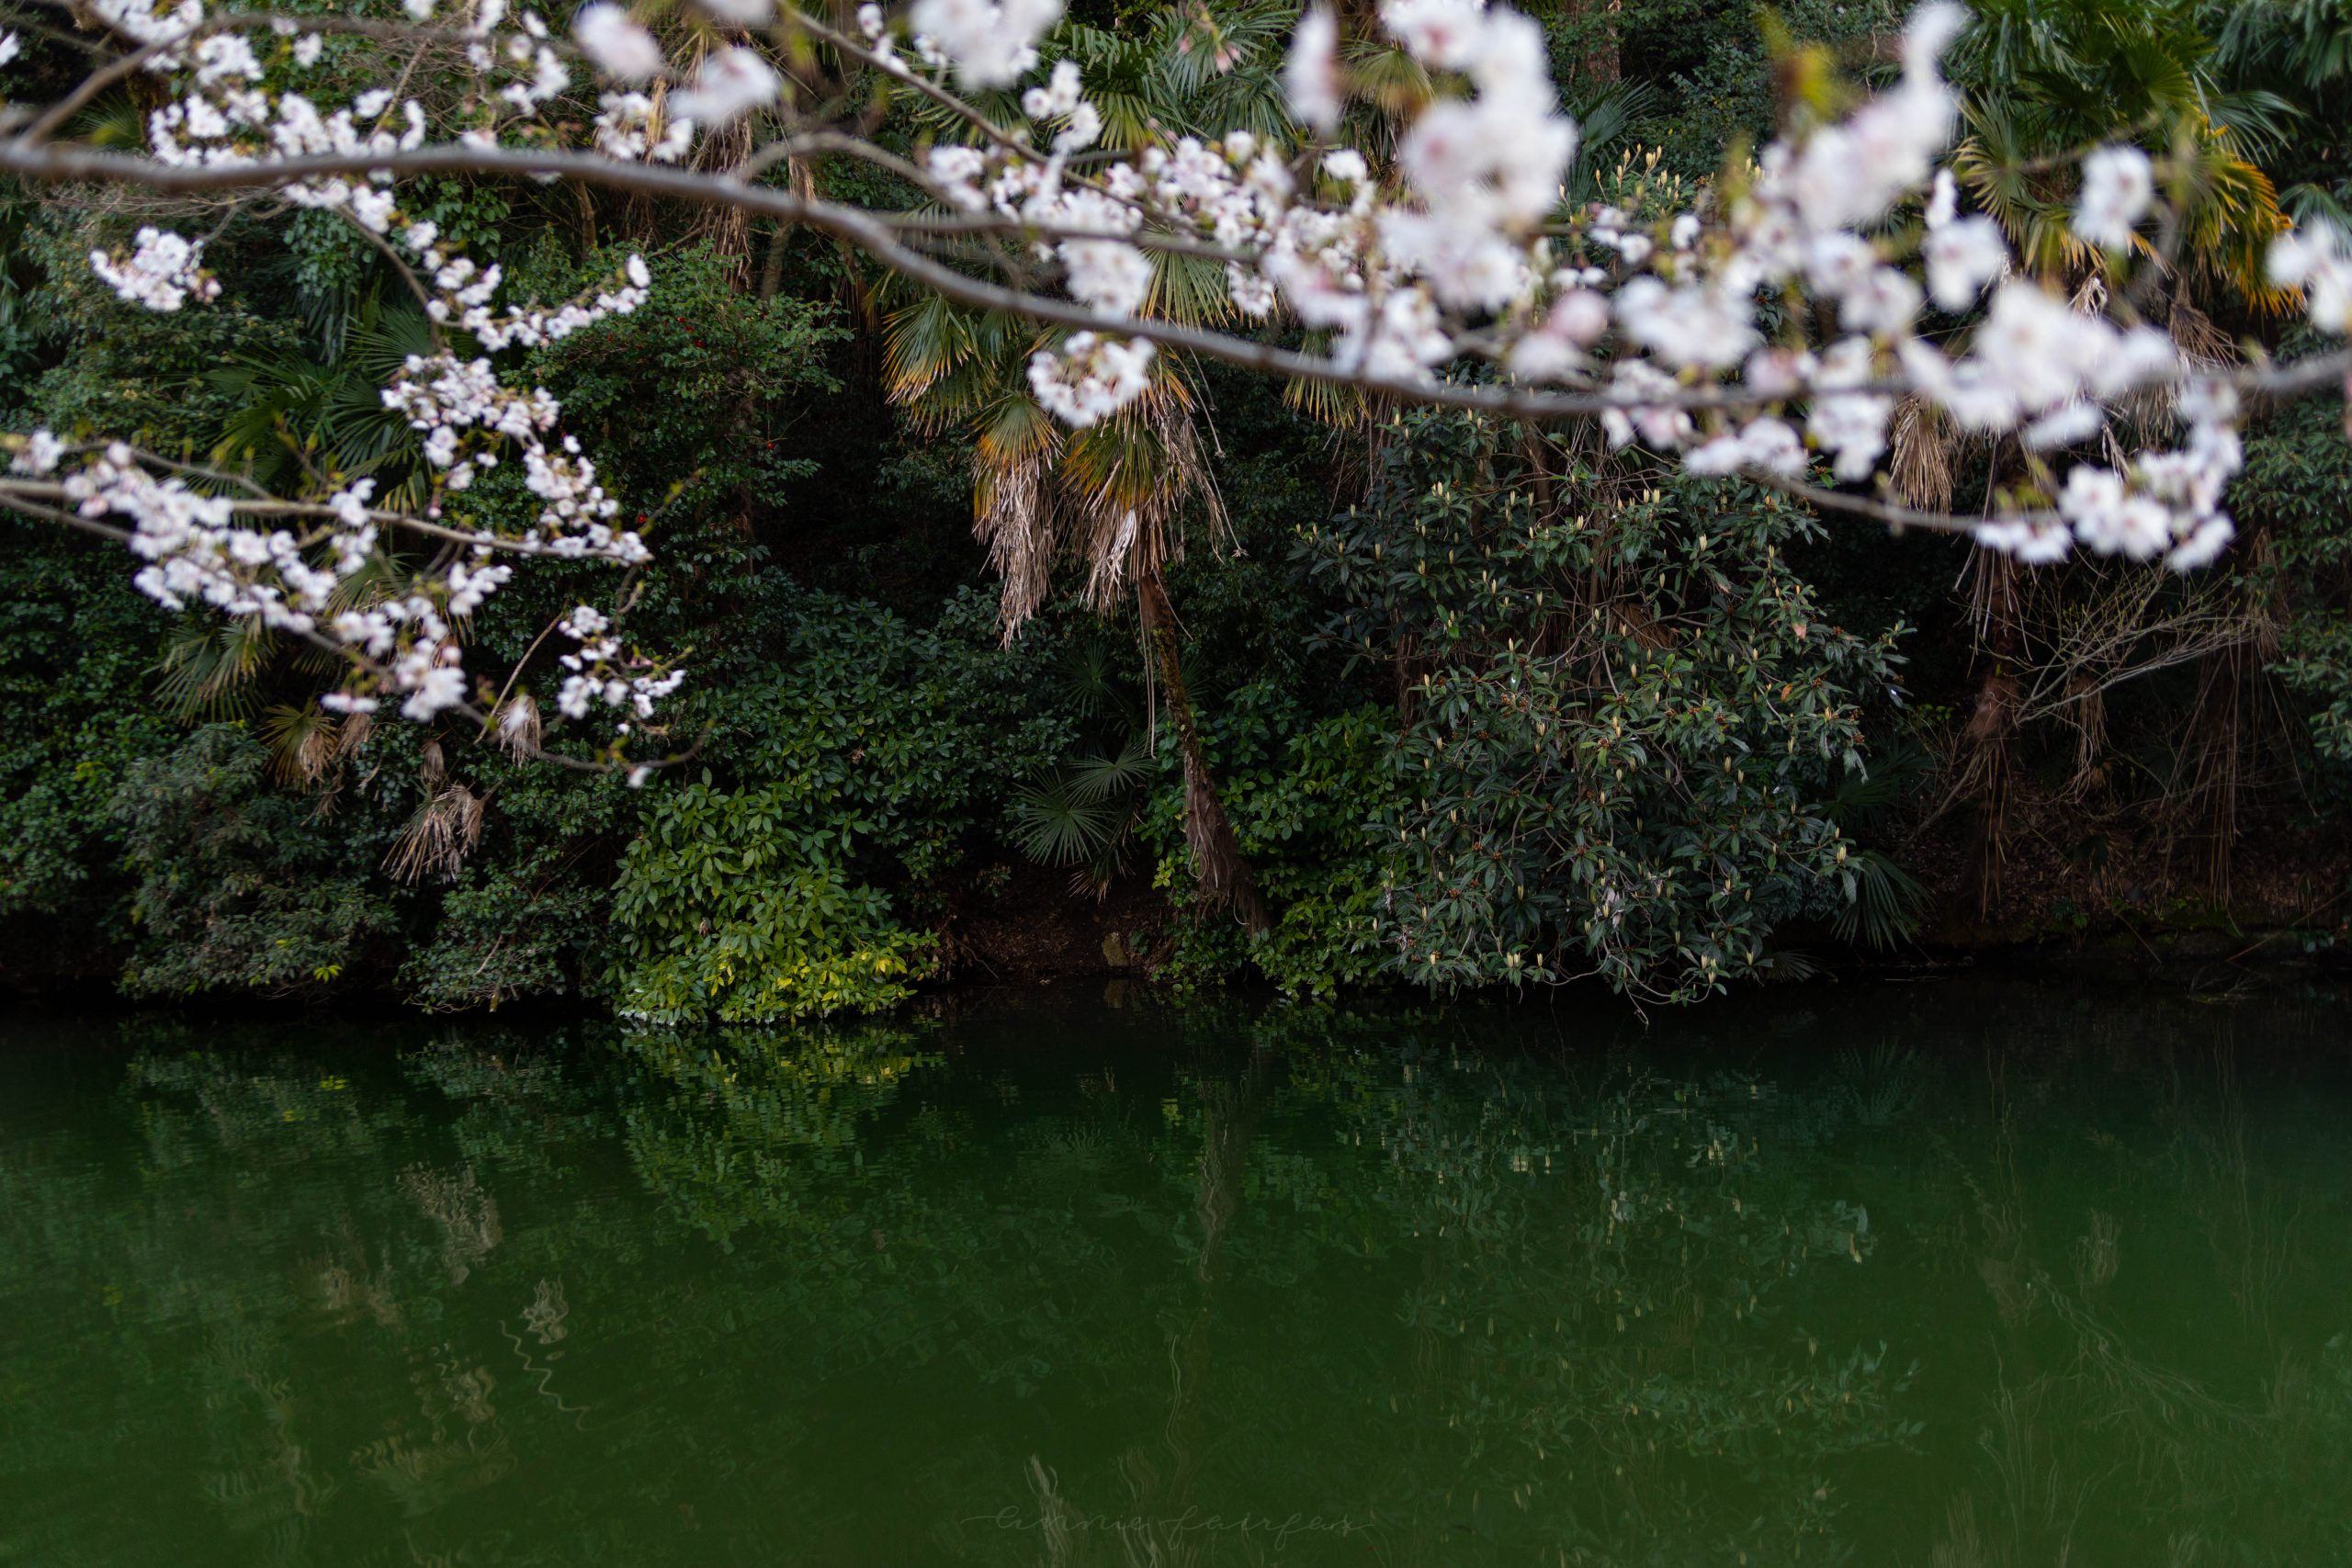 Park at Sunset Near Himeji Castle Cherry Blossom Season in Hemeji Japan by @AnnieFairfax